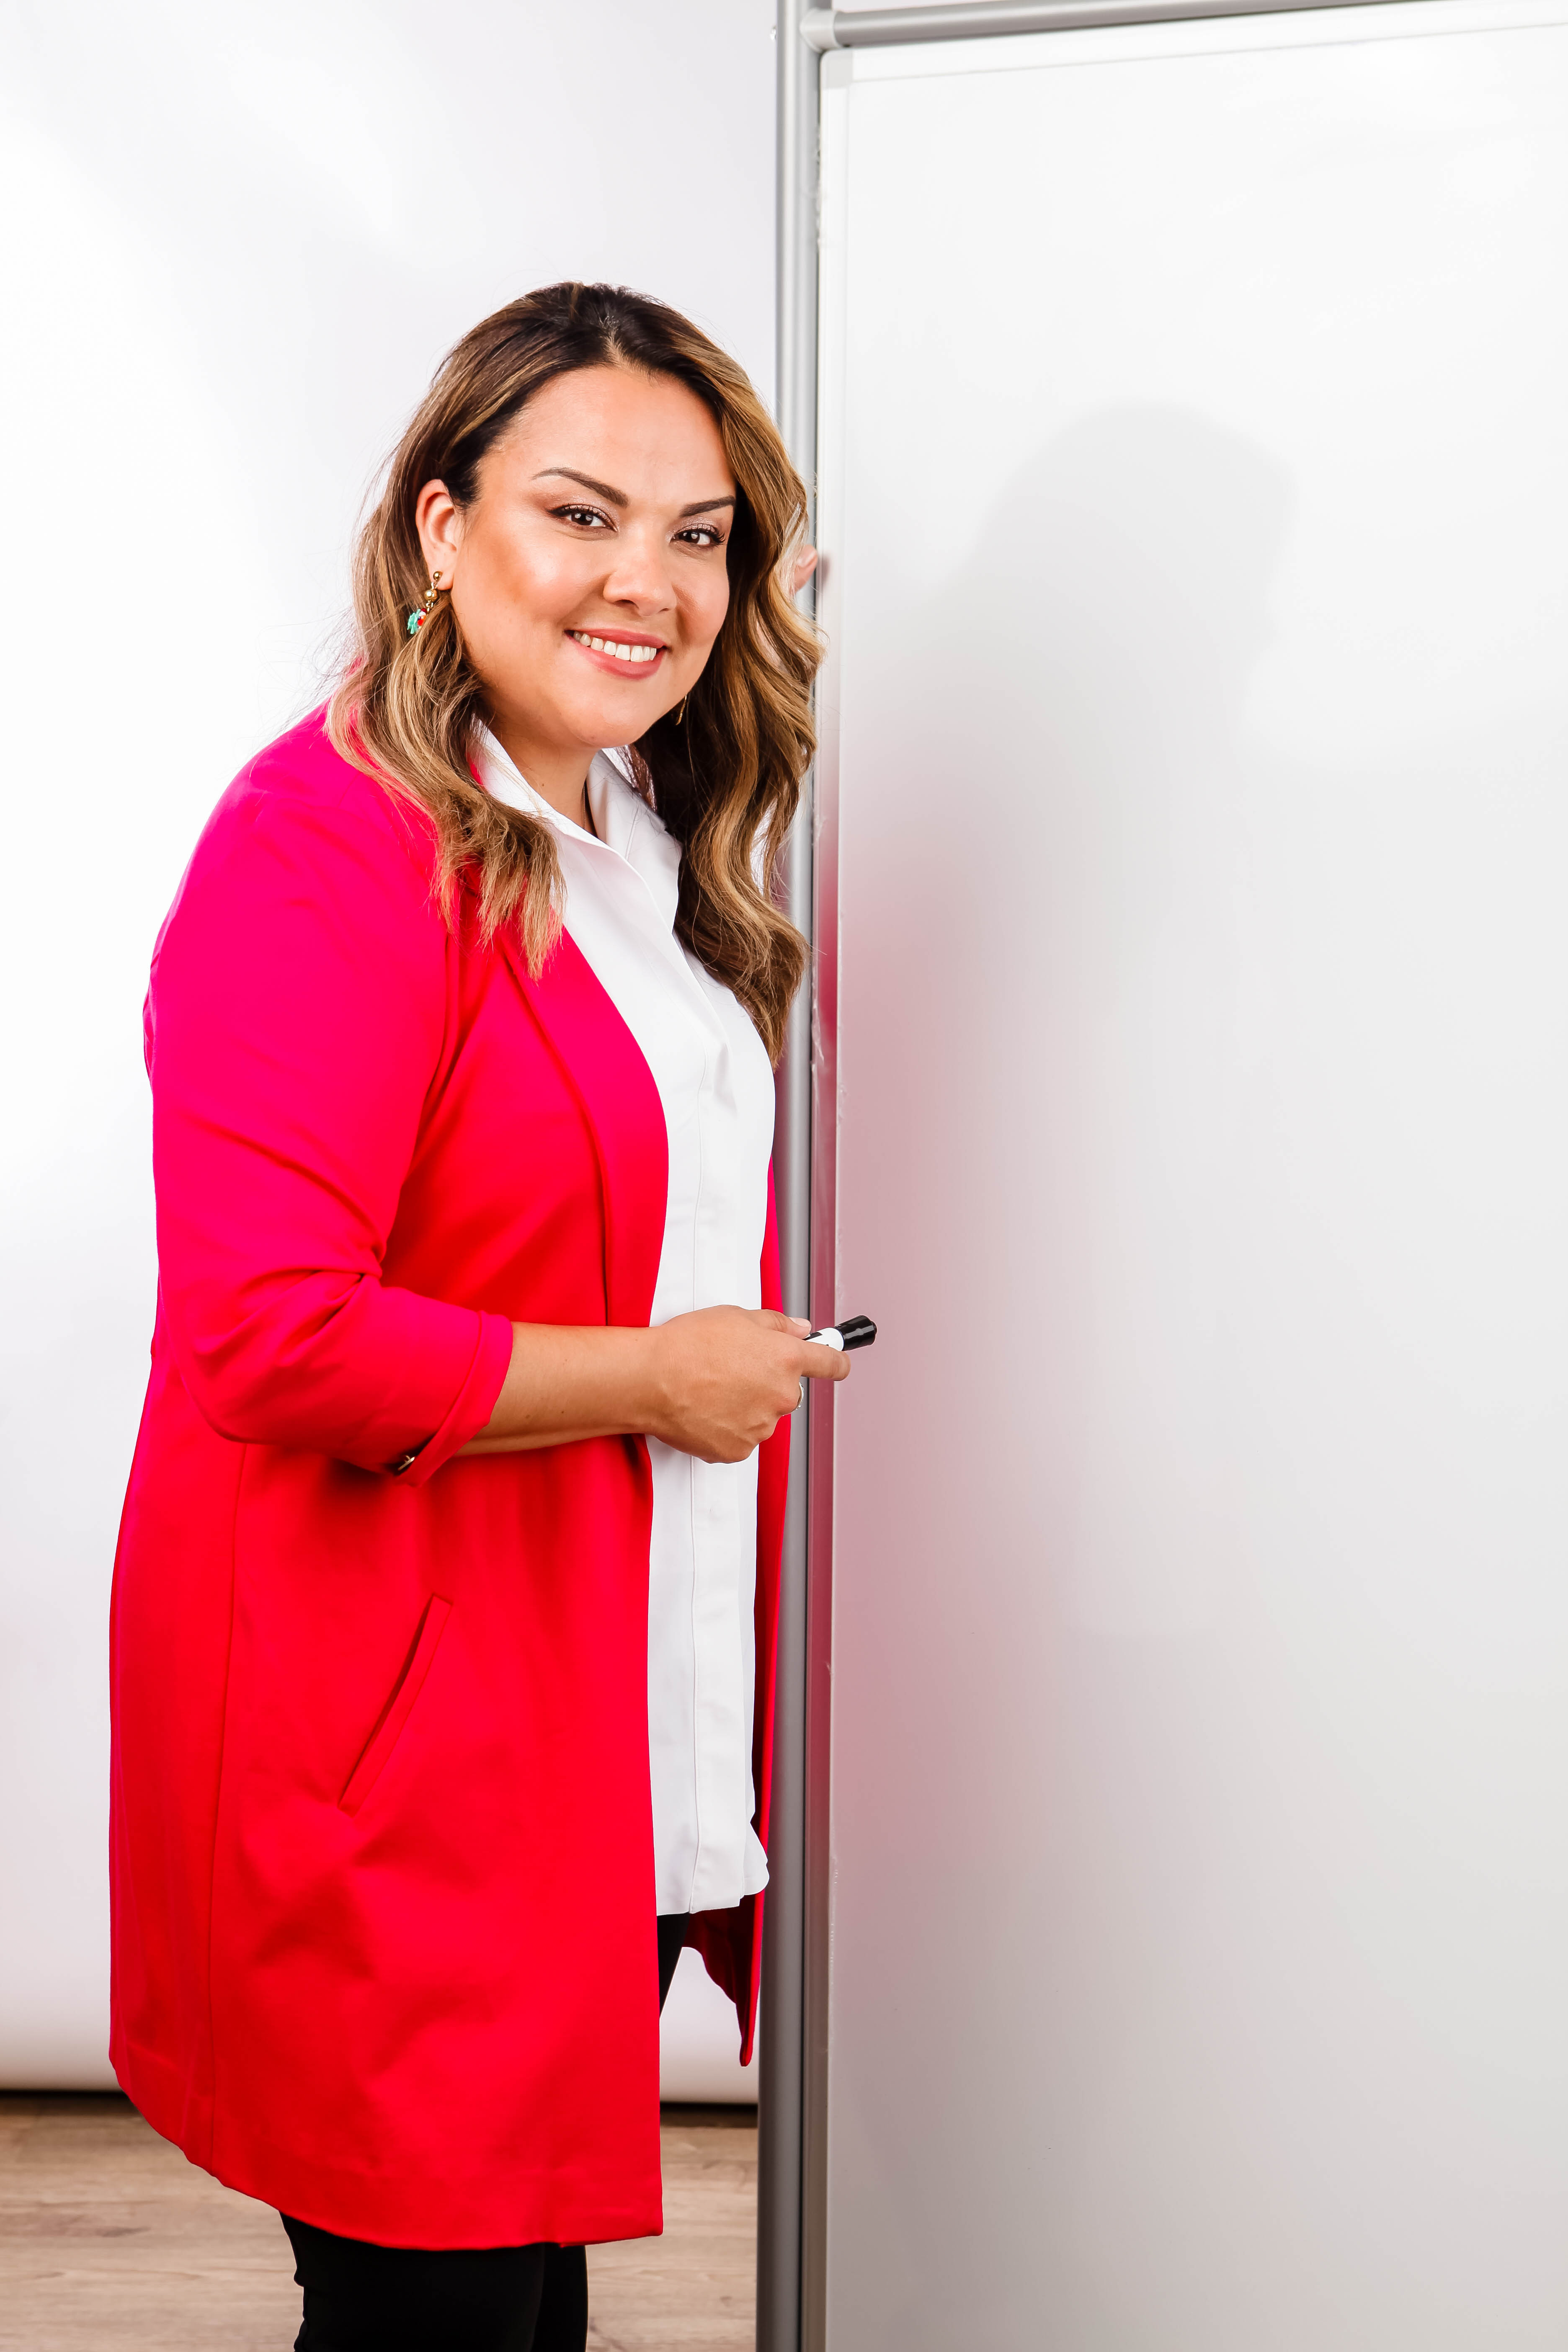 Karla Briones in a red blazer in front of a white board